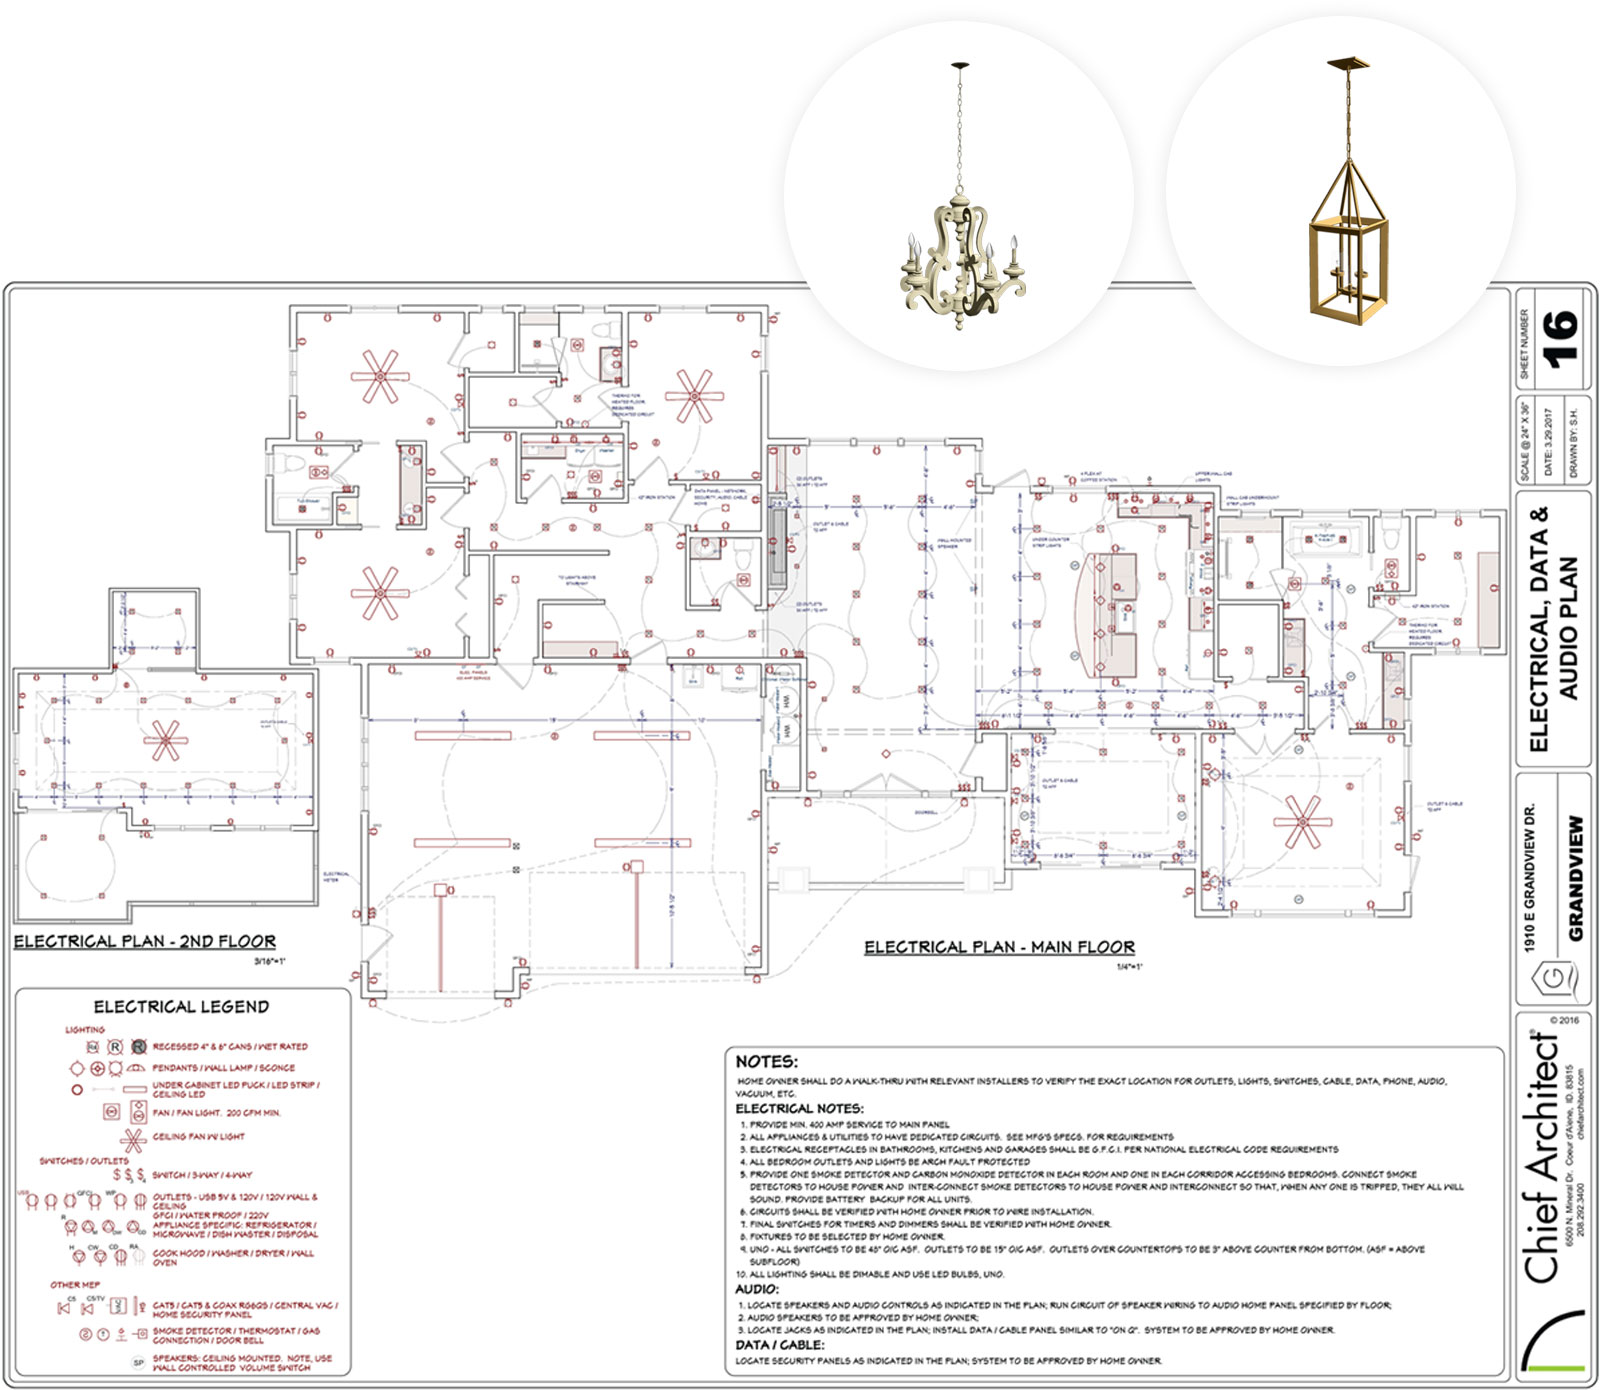 Sample Electrical & Lighting Planset